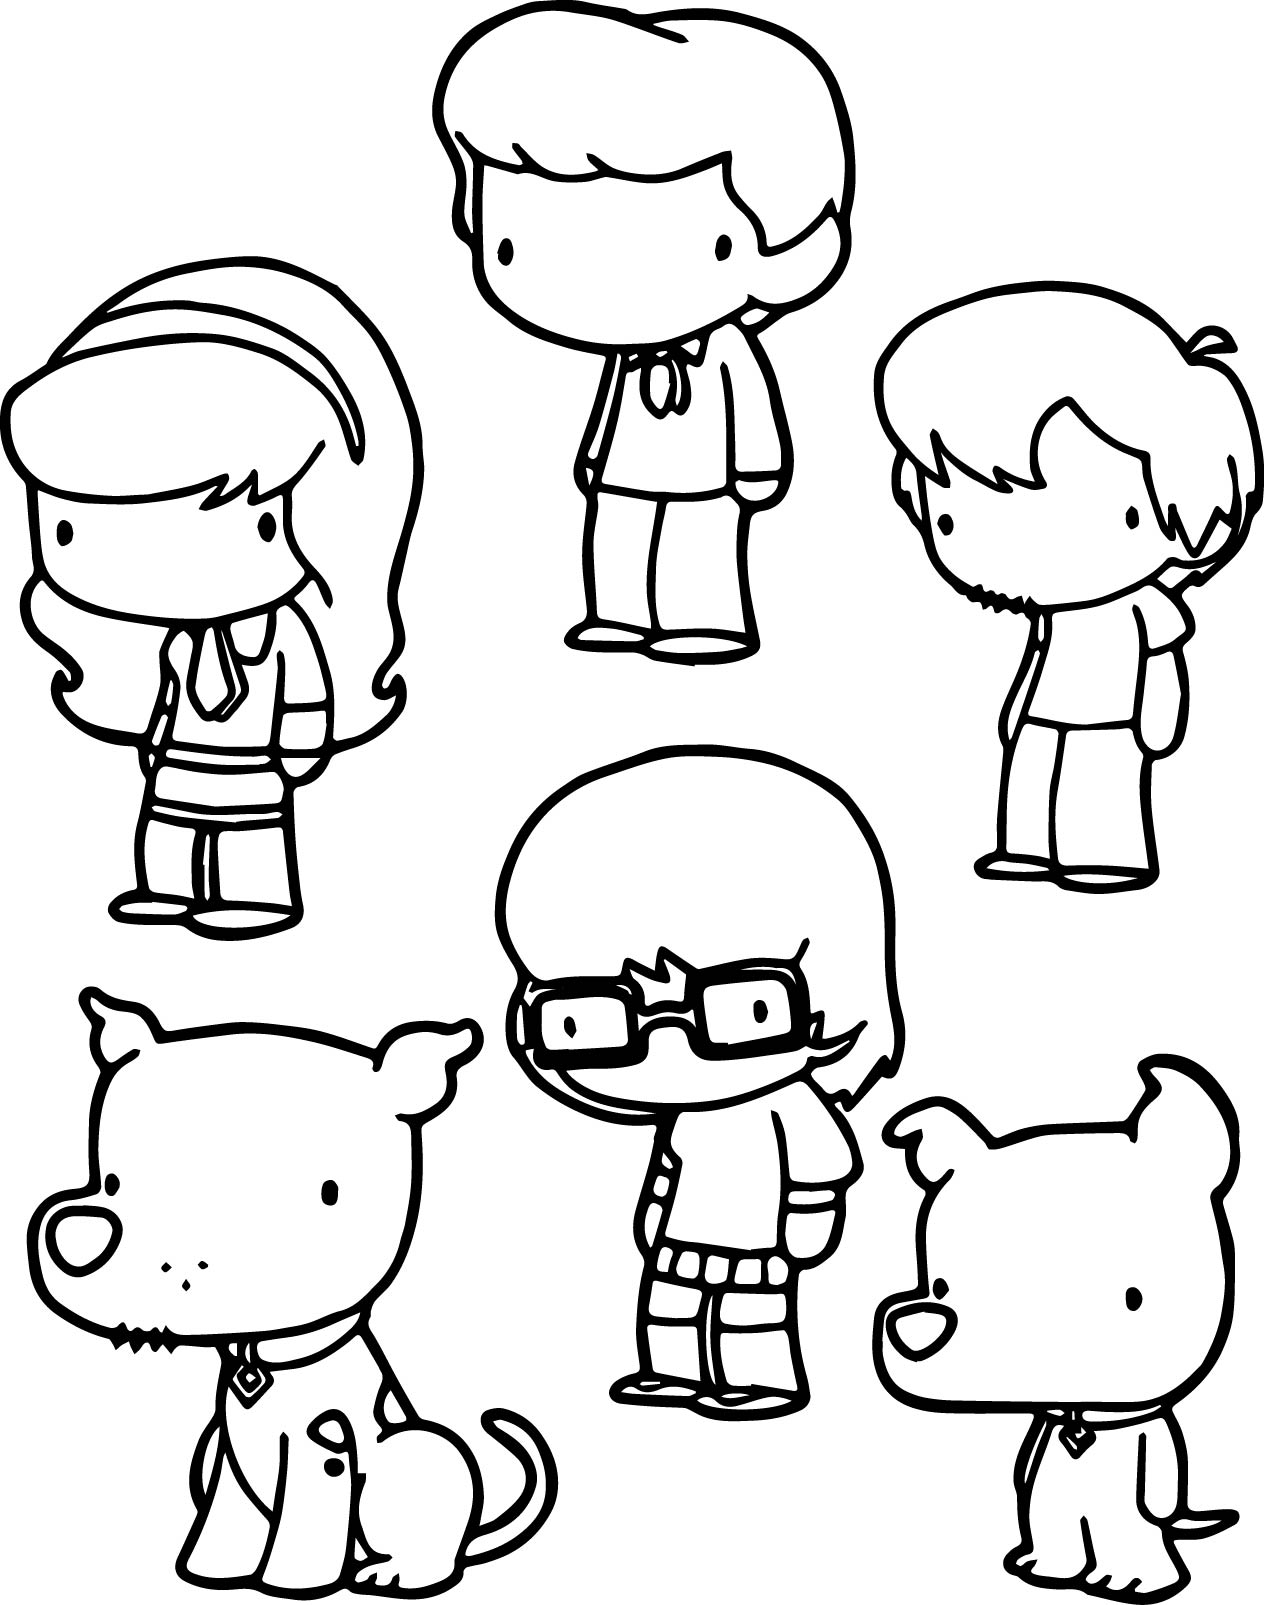 Basic scooby doo chibi characters coloring pages for Scooby doo christmas coloring pages